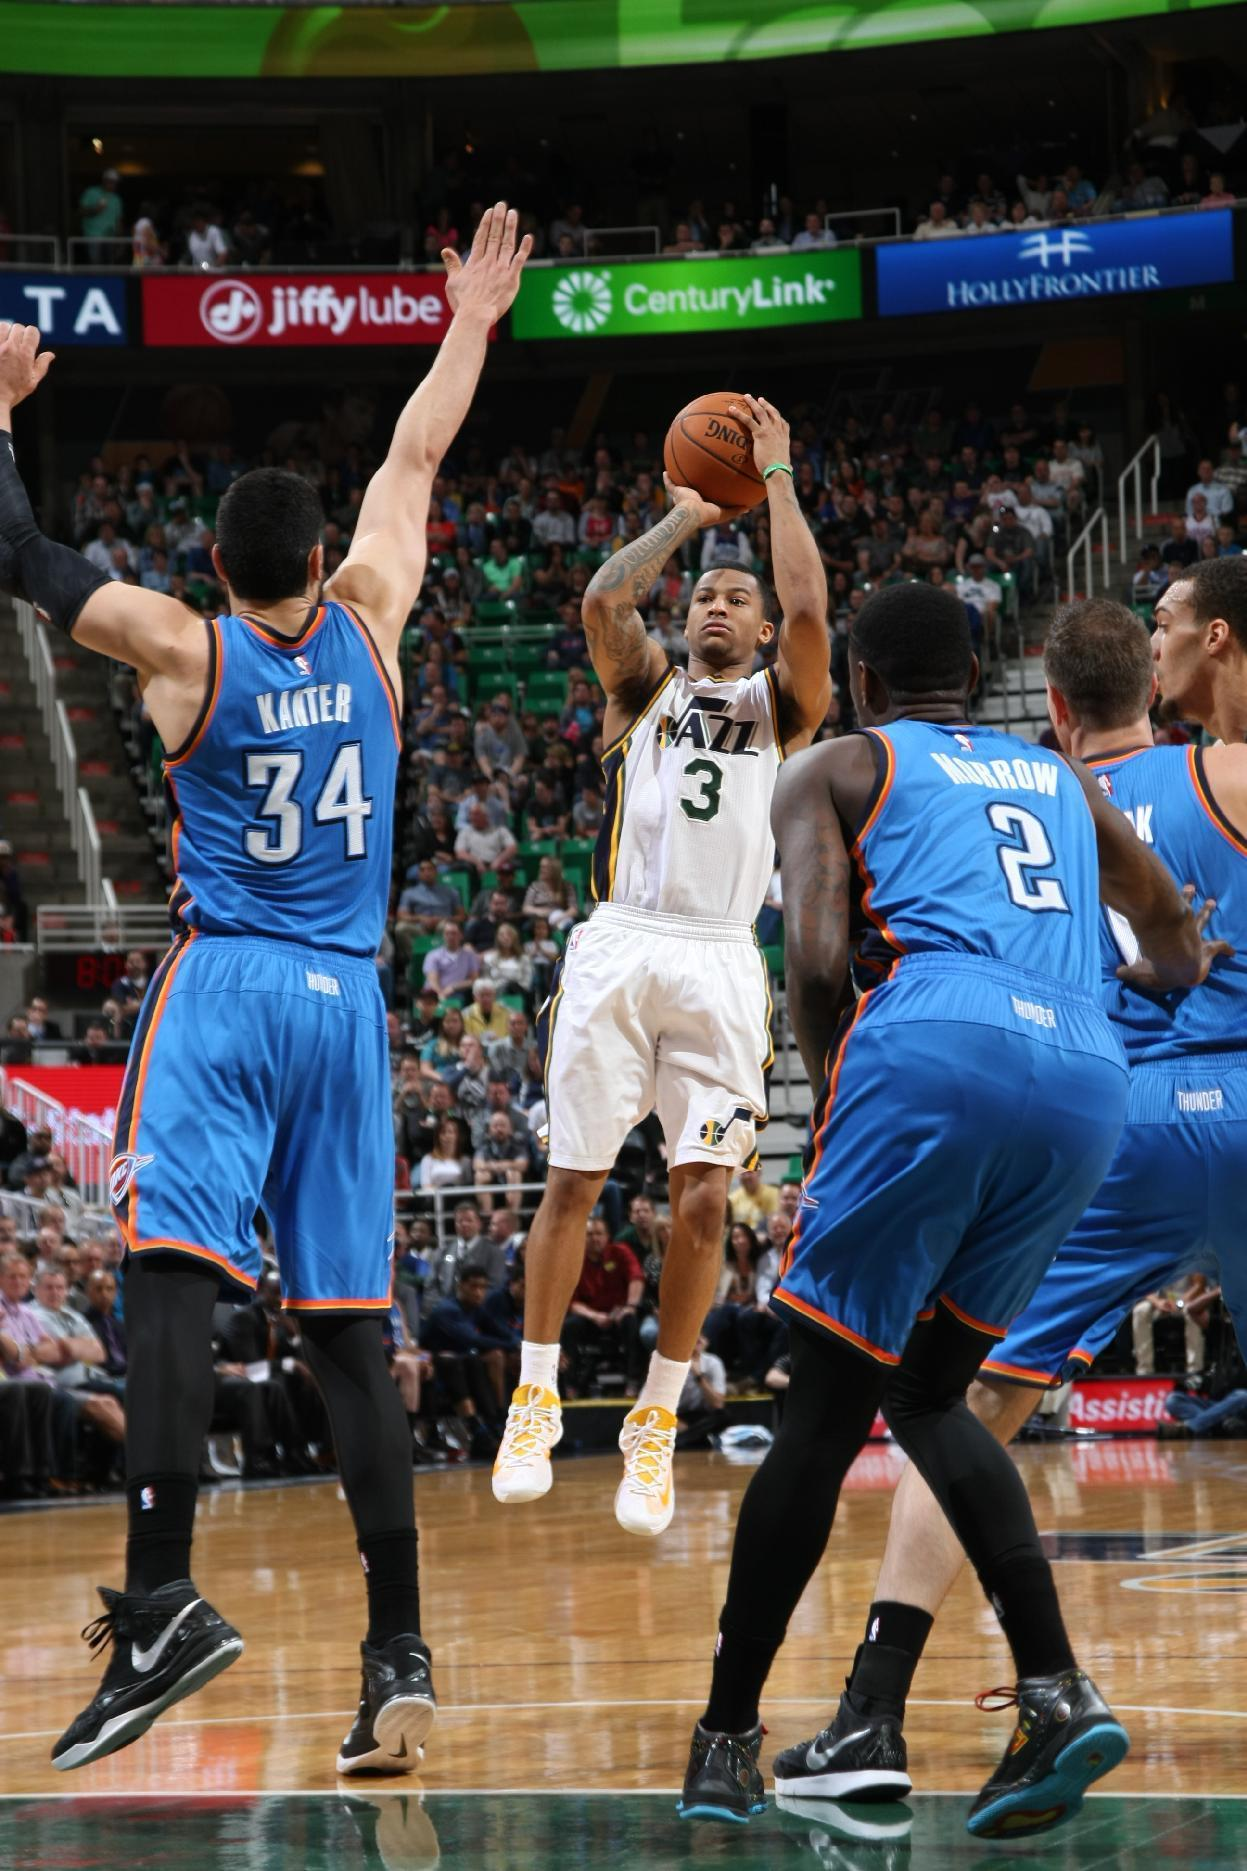 Jazz rally from down 16 to beat Thunder 94-89